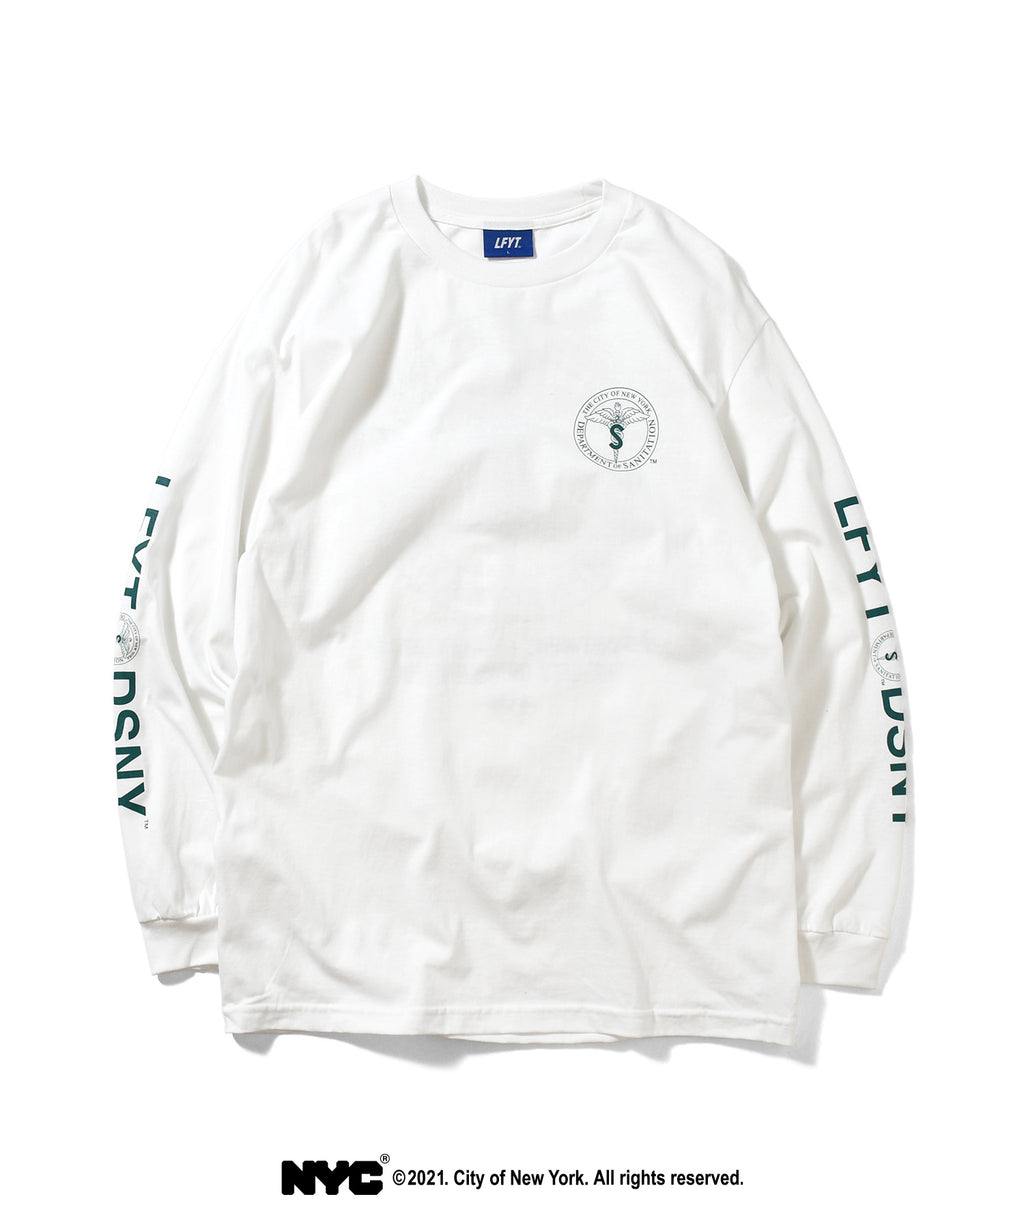 LFYT X DSNY COMMUNITY SERVICES L/S TEE LS210102 WHITE